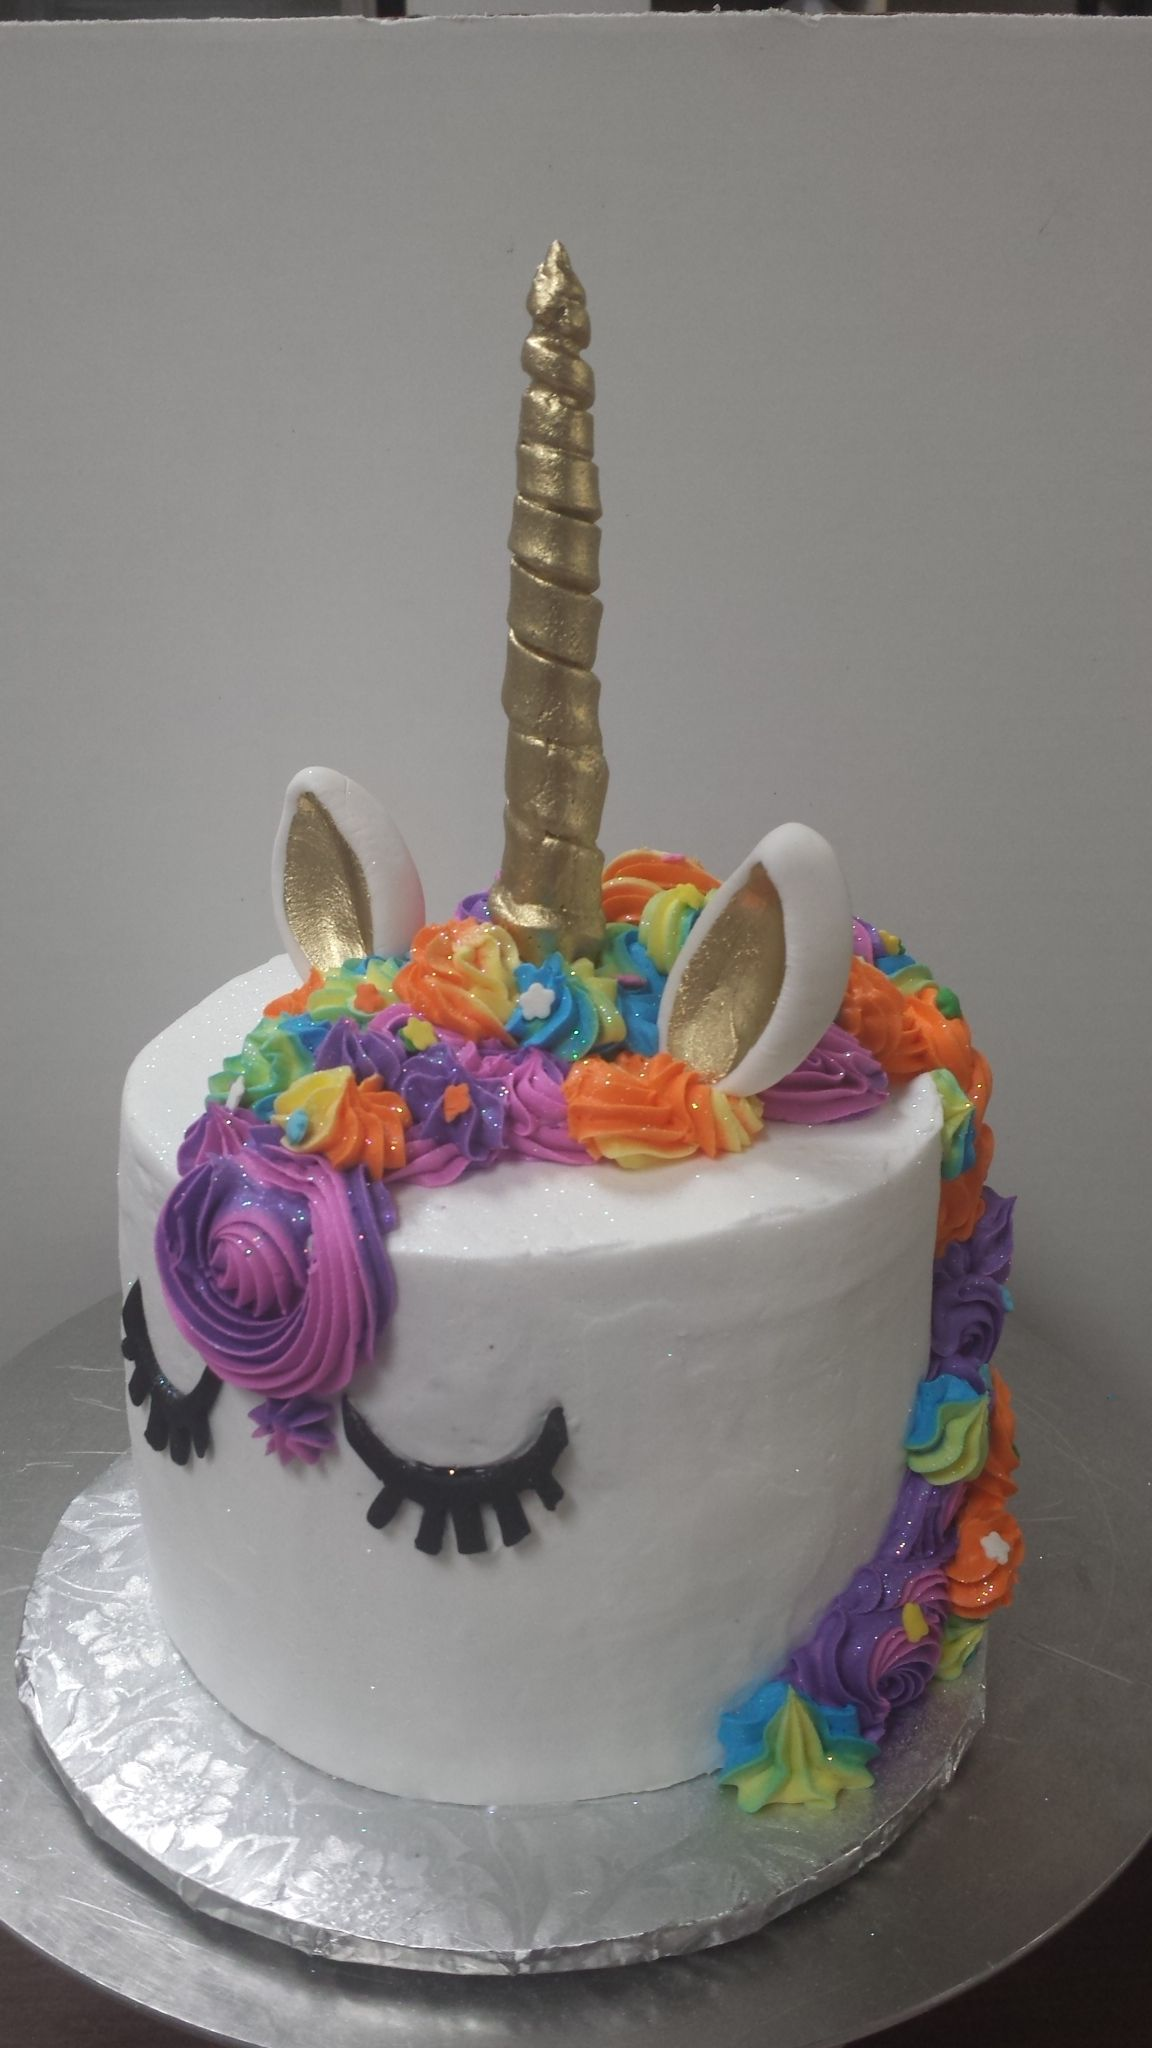 Unicorn Cake Makes Any Birthday A Rainbow Day Karens Cakes Kw At